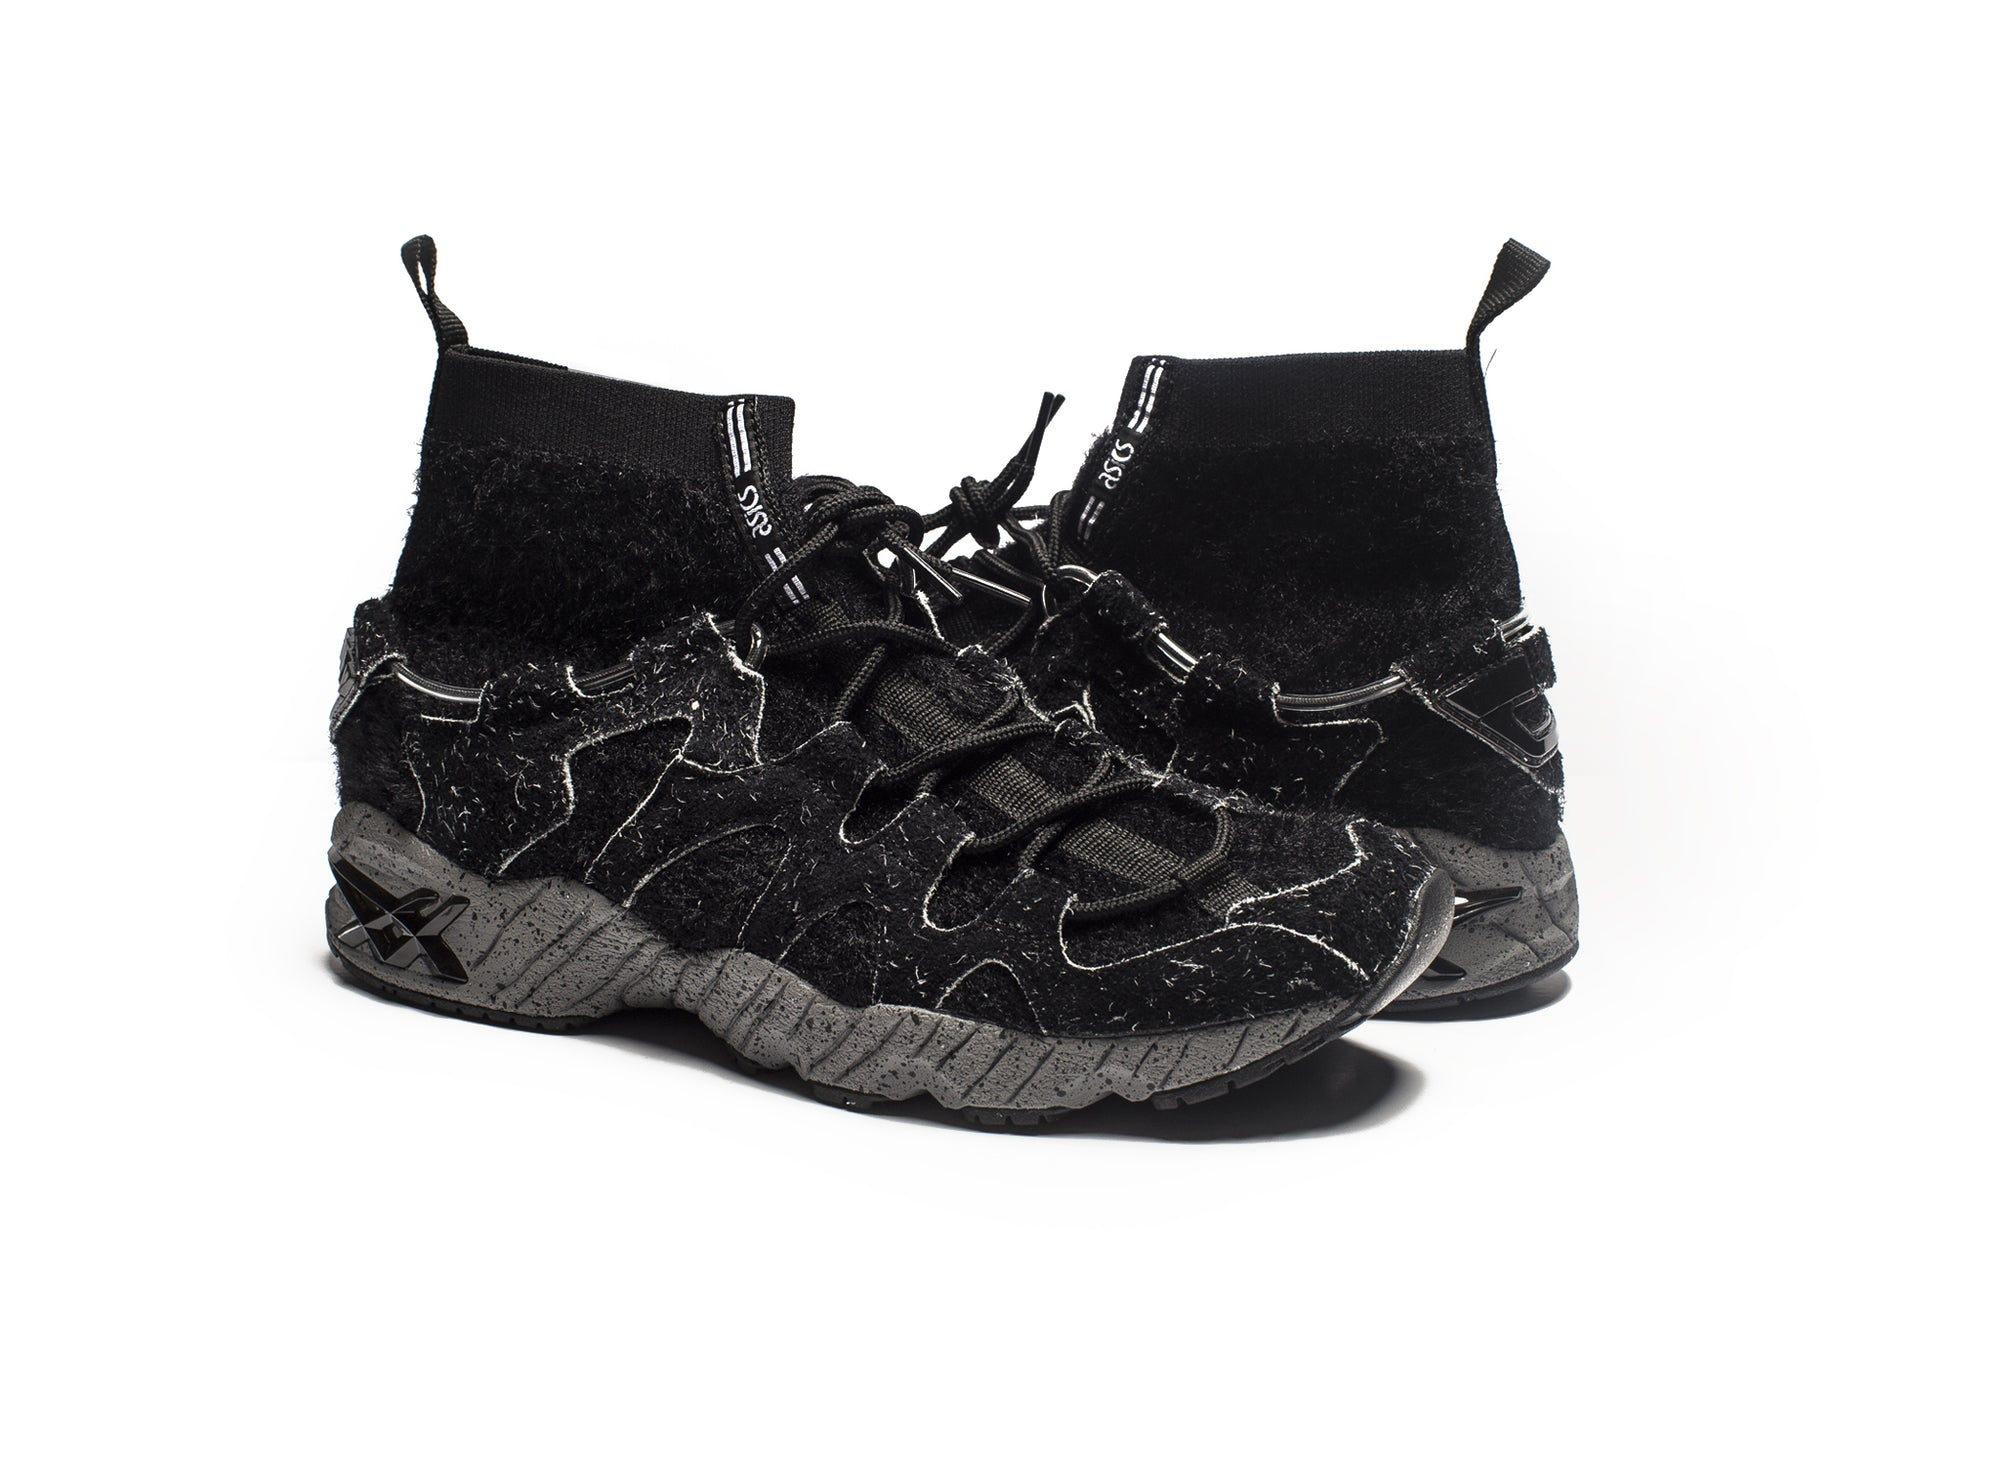 f9a5f9f0c107 ASICS GEL MAI KNIT MT - Oneness Boutique